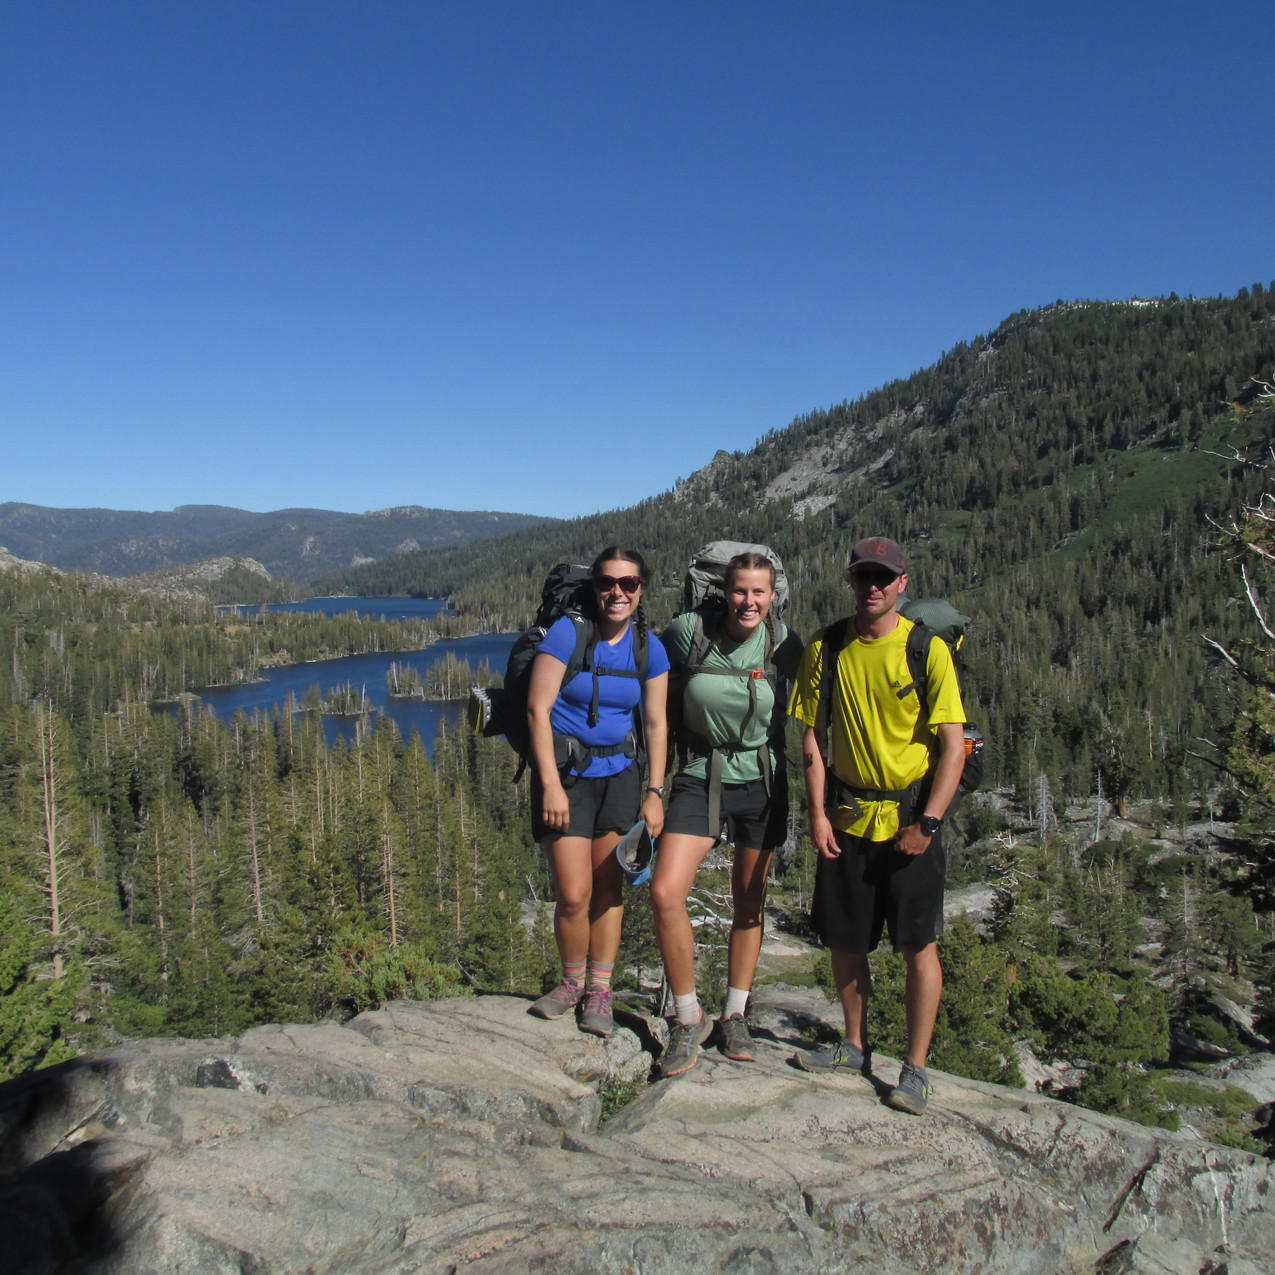 Two of my favorite people I met on trail: Rat and Ant.  I met them shortly after Kennedy Meadows and got to hike with them for a little over a day out of South Lake Tahoe.